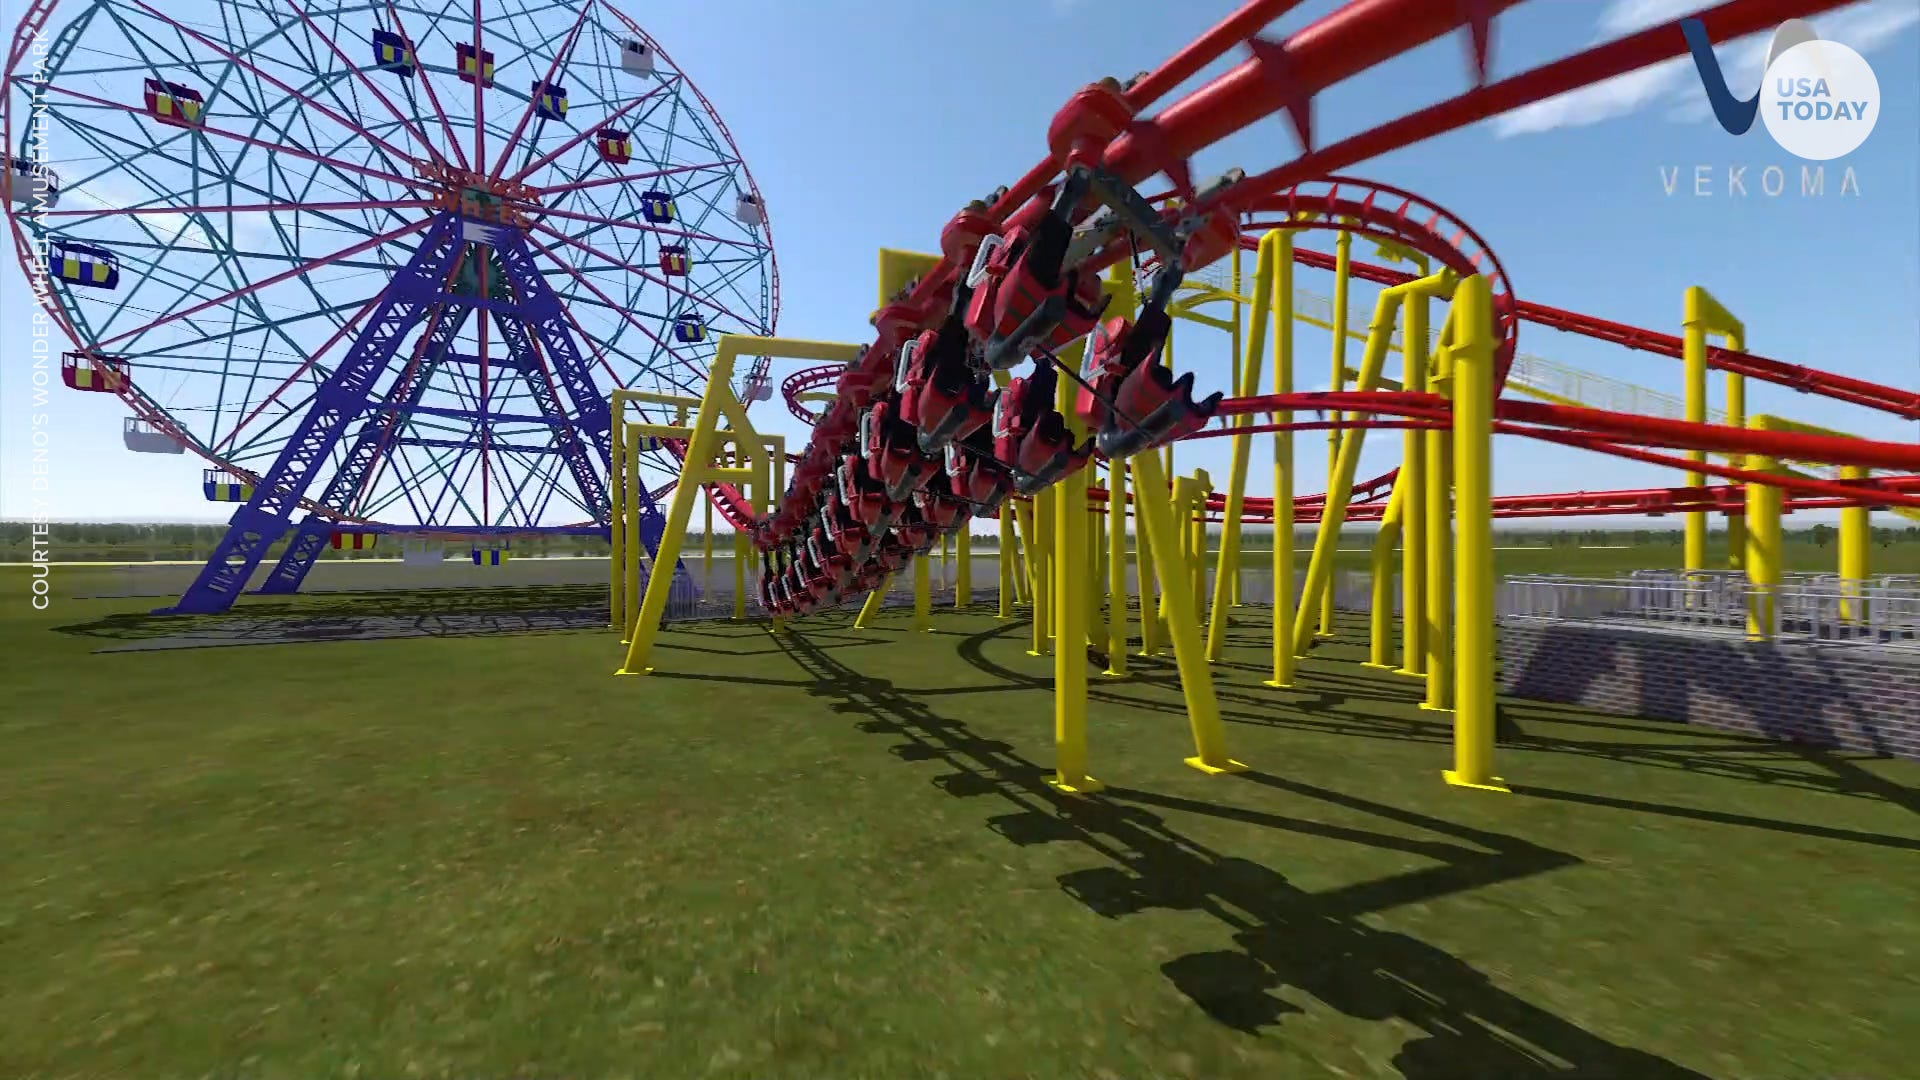 New 'Phoenix' suspended thrill roller coaster will rise at New York's Coney Island